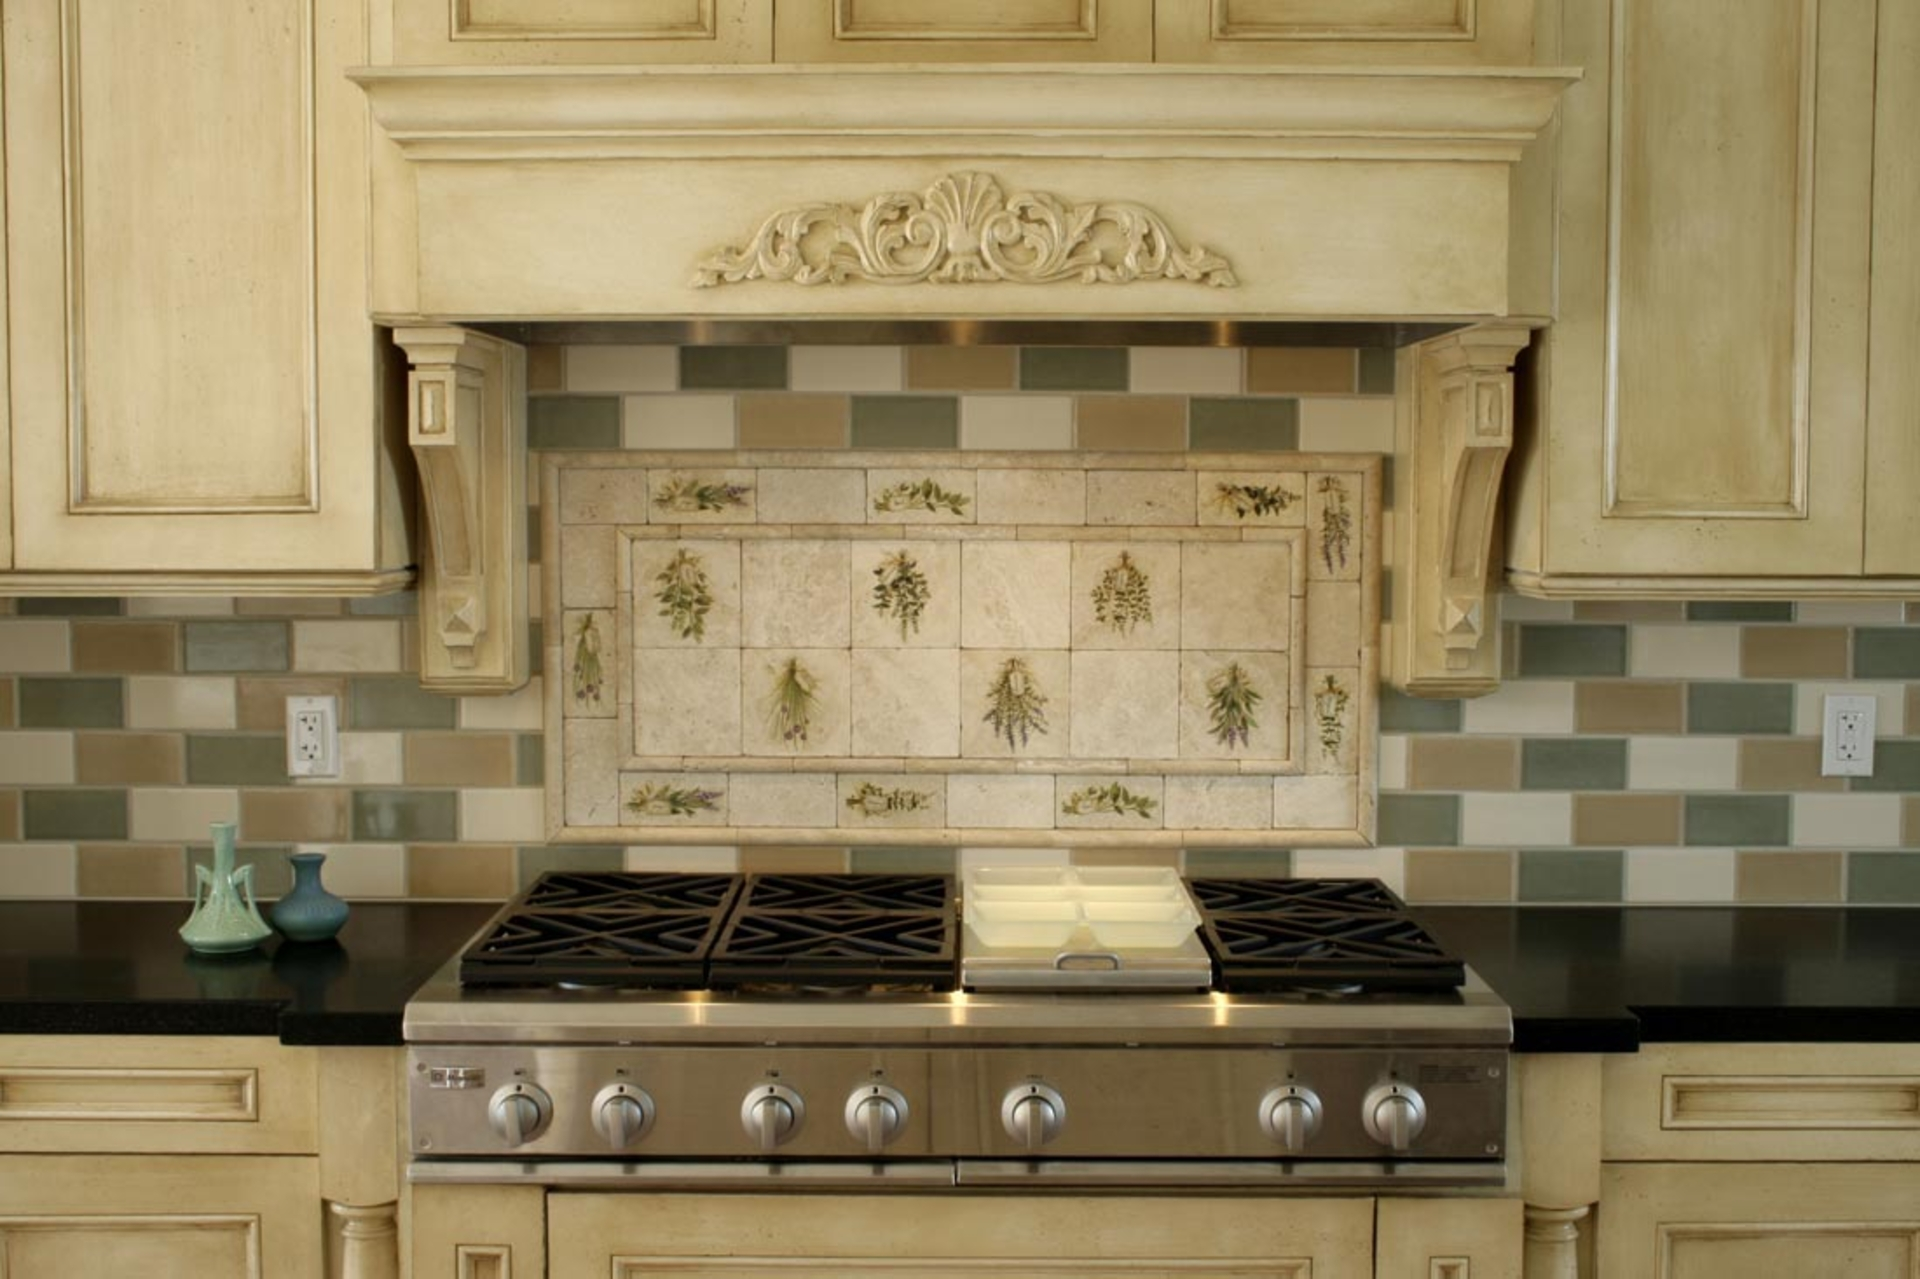 1920x1440-sample-kitchen-backsplash-designs-i